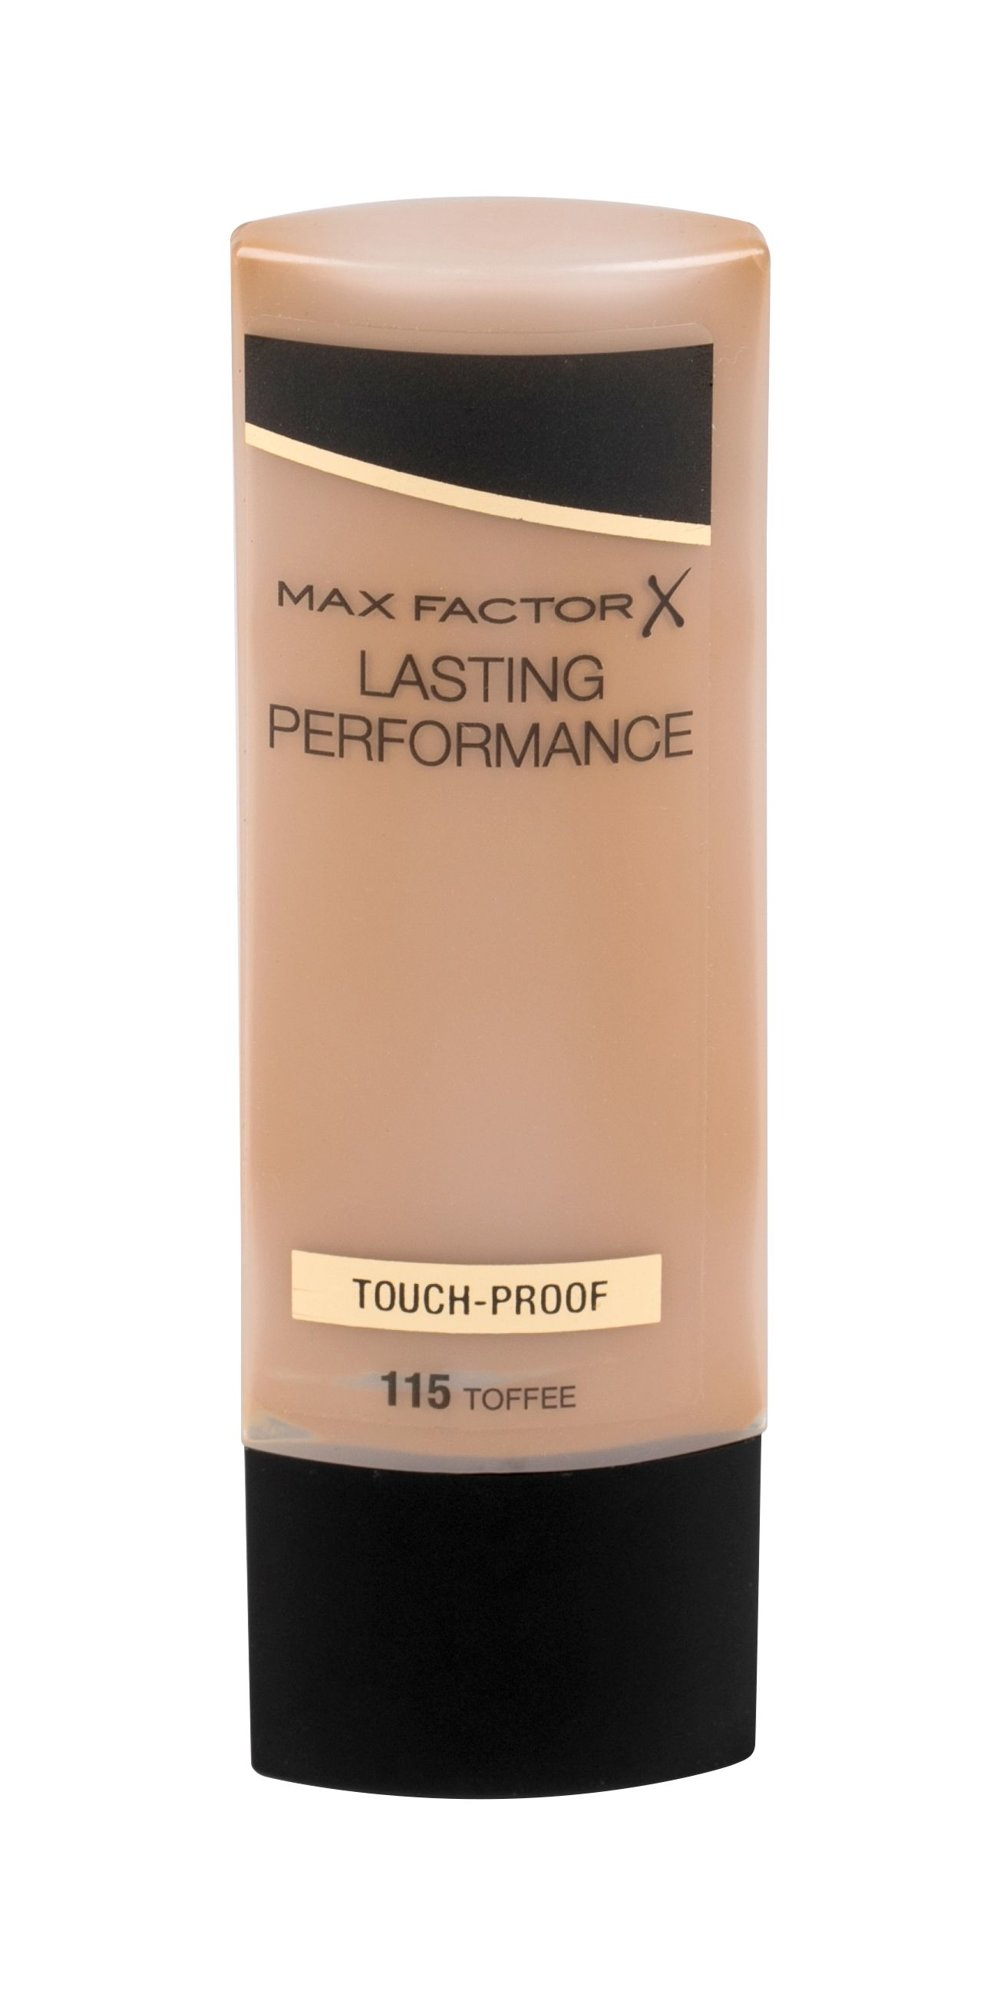 Max Factor Lasting Performance Makeup 35ml 115 Toffee